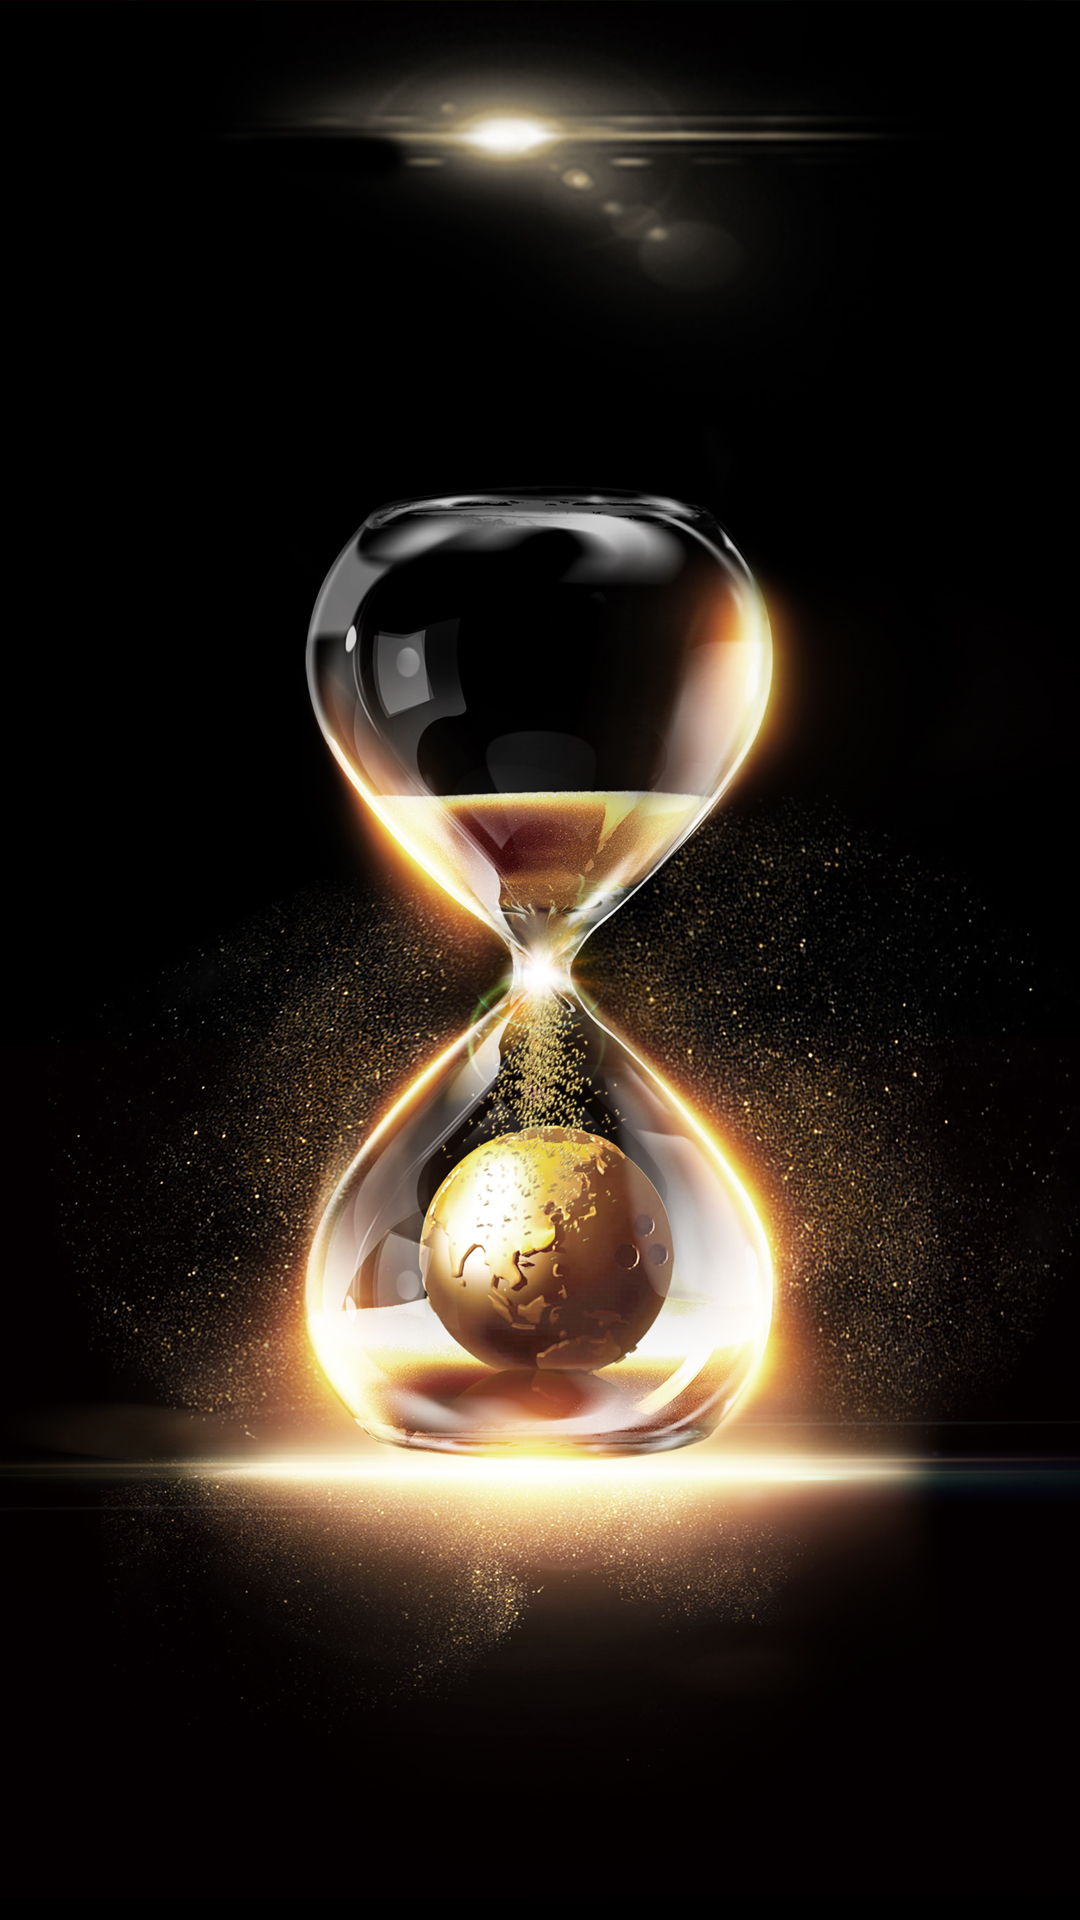 hourglass h5 background  hourglass  bright  cool background image for free download